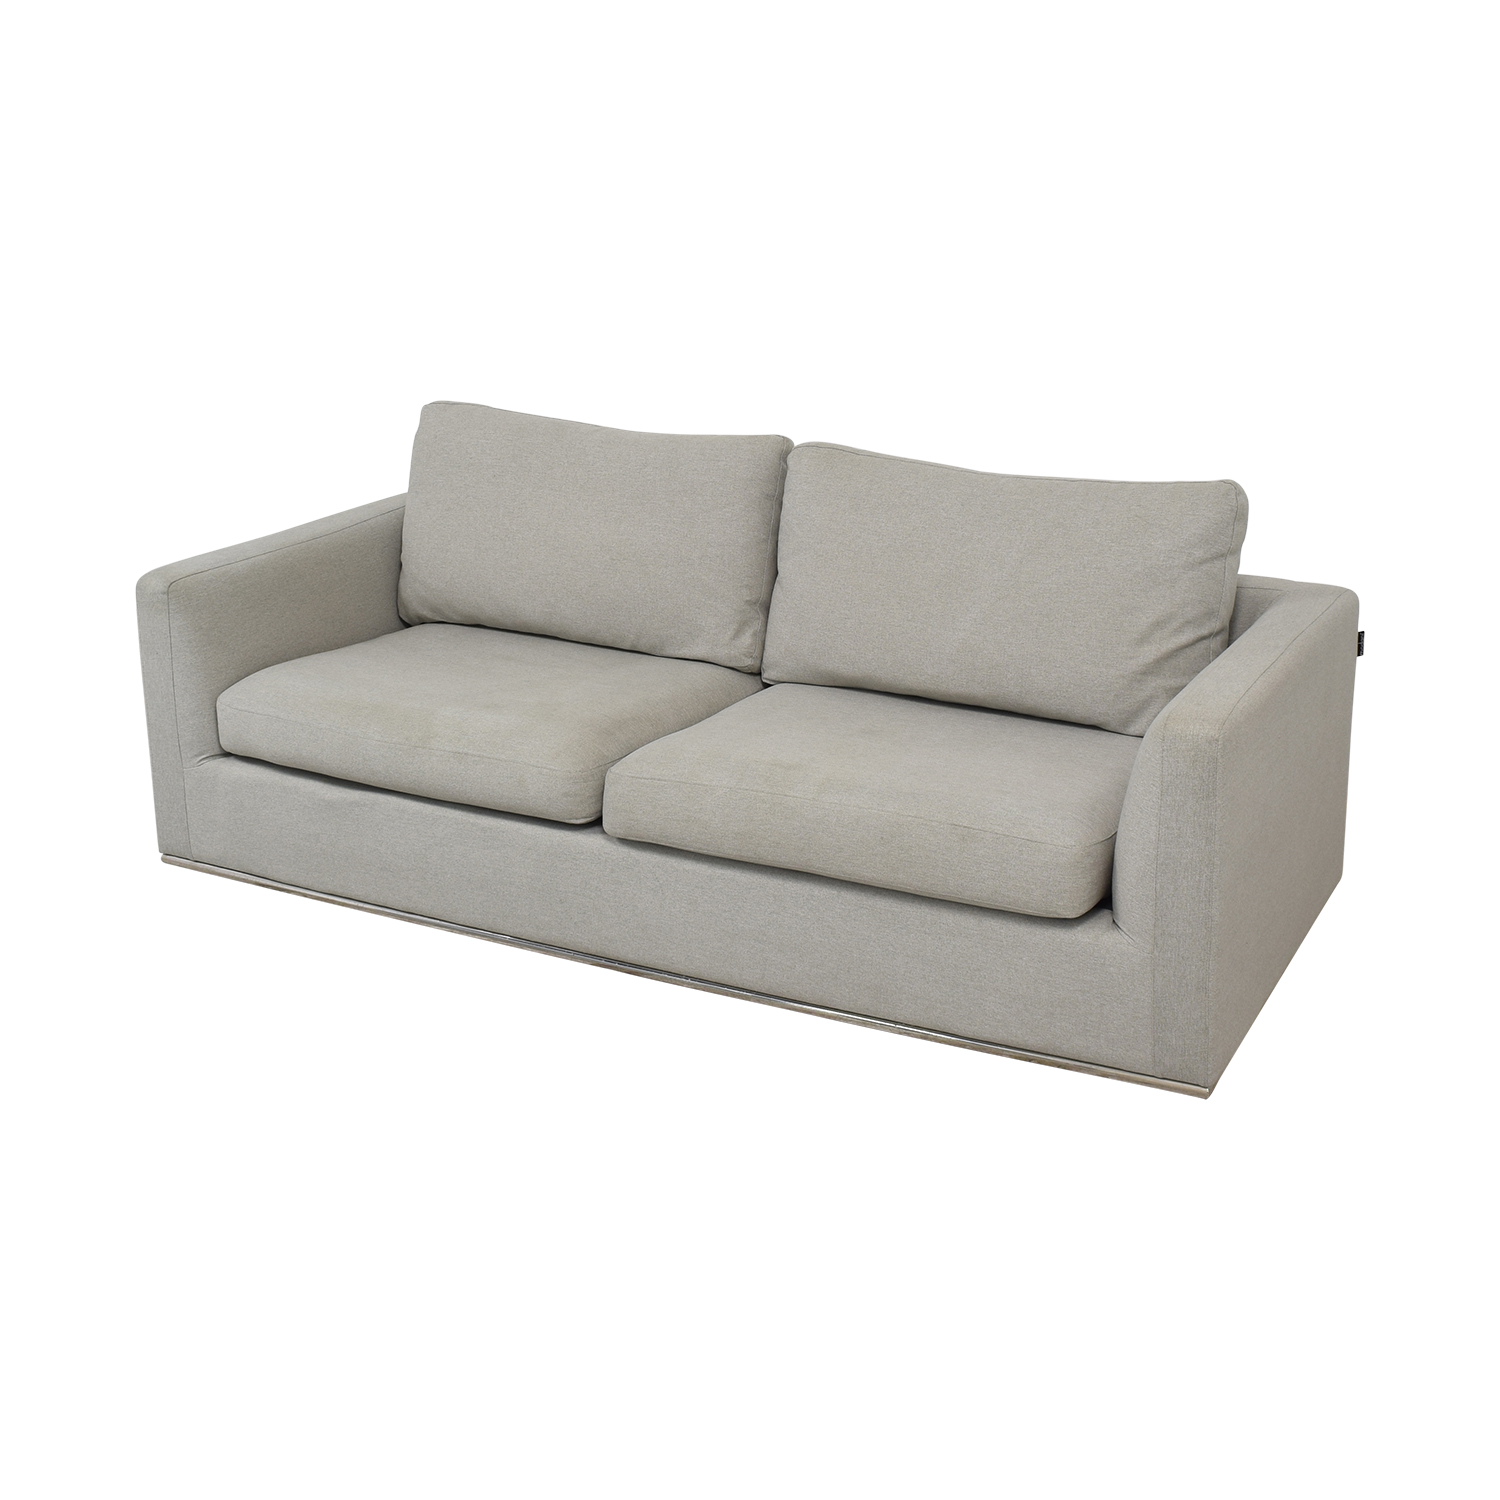 Modani Modani Modern Two Seater Sofa second hand